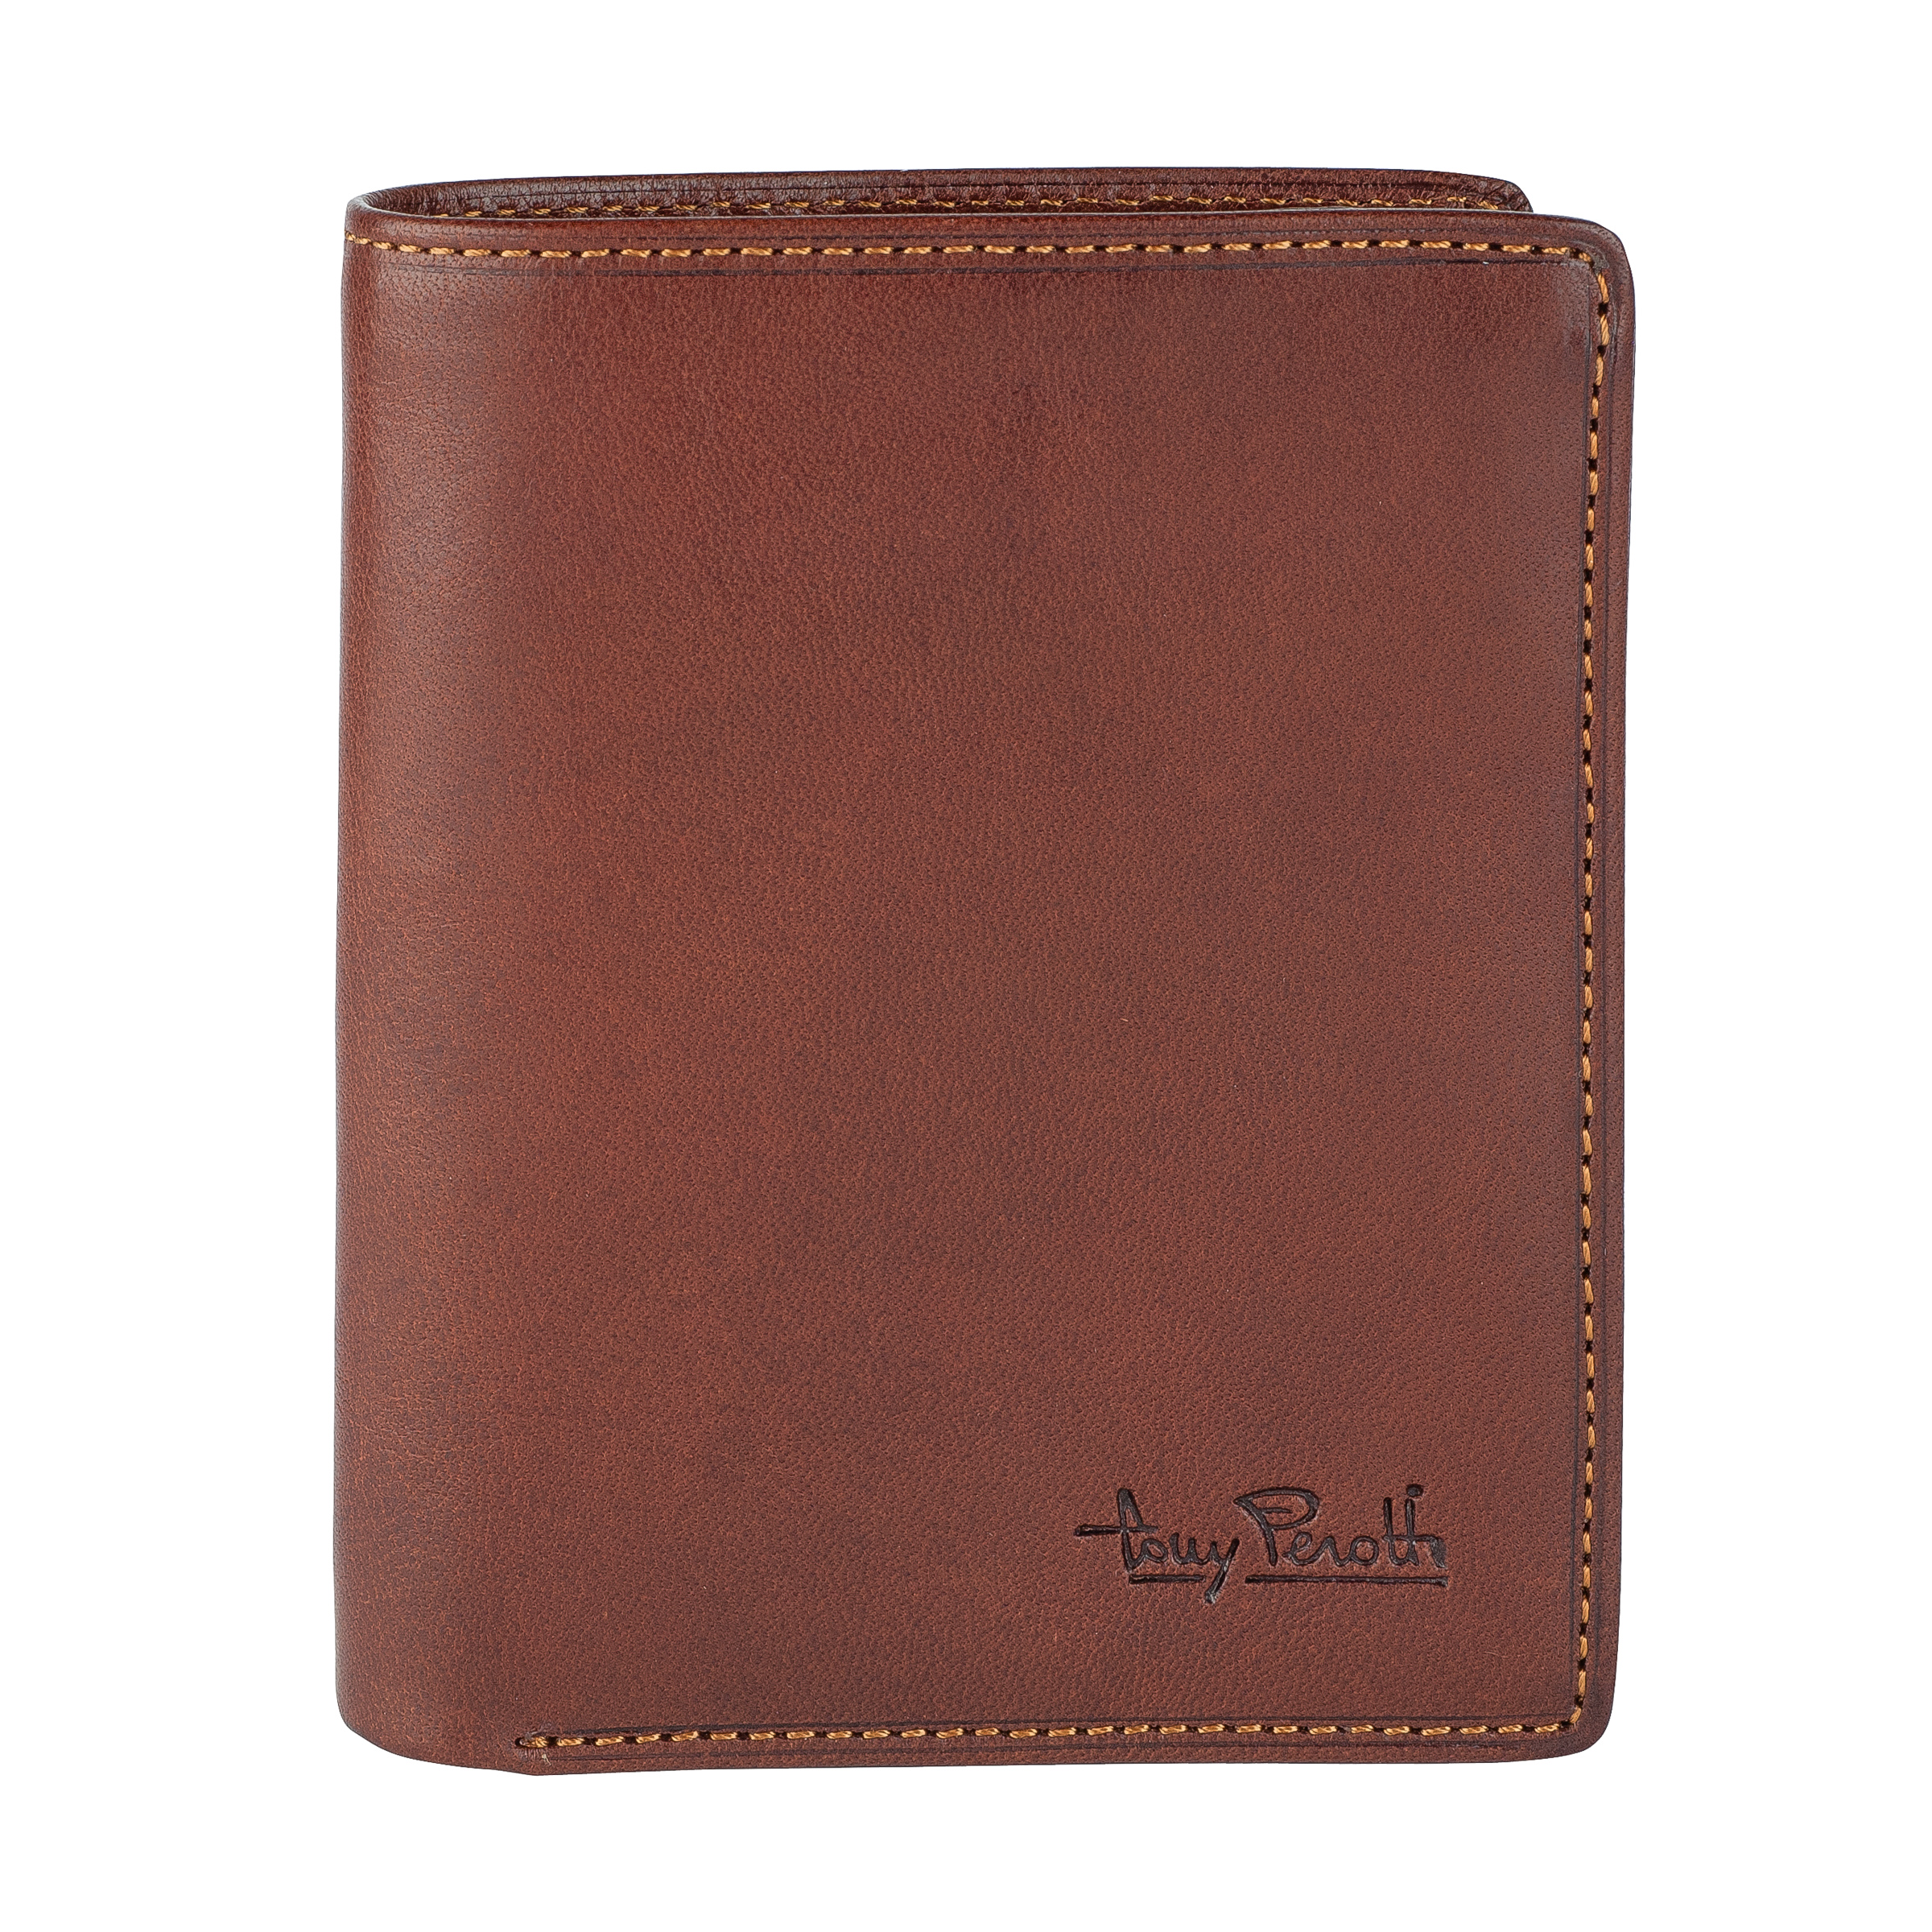 Tony Perotti Vertical billfold with coin pocket and creditcard slots Brown